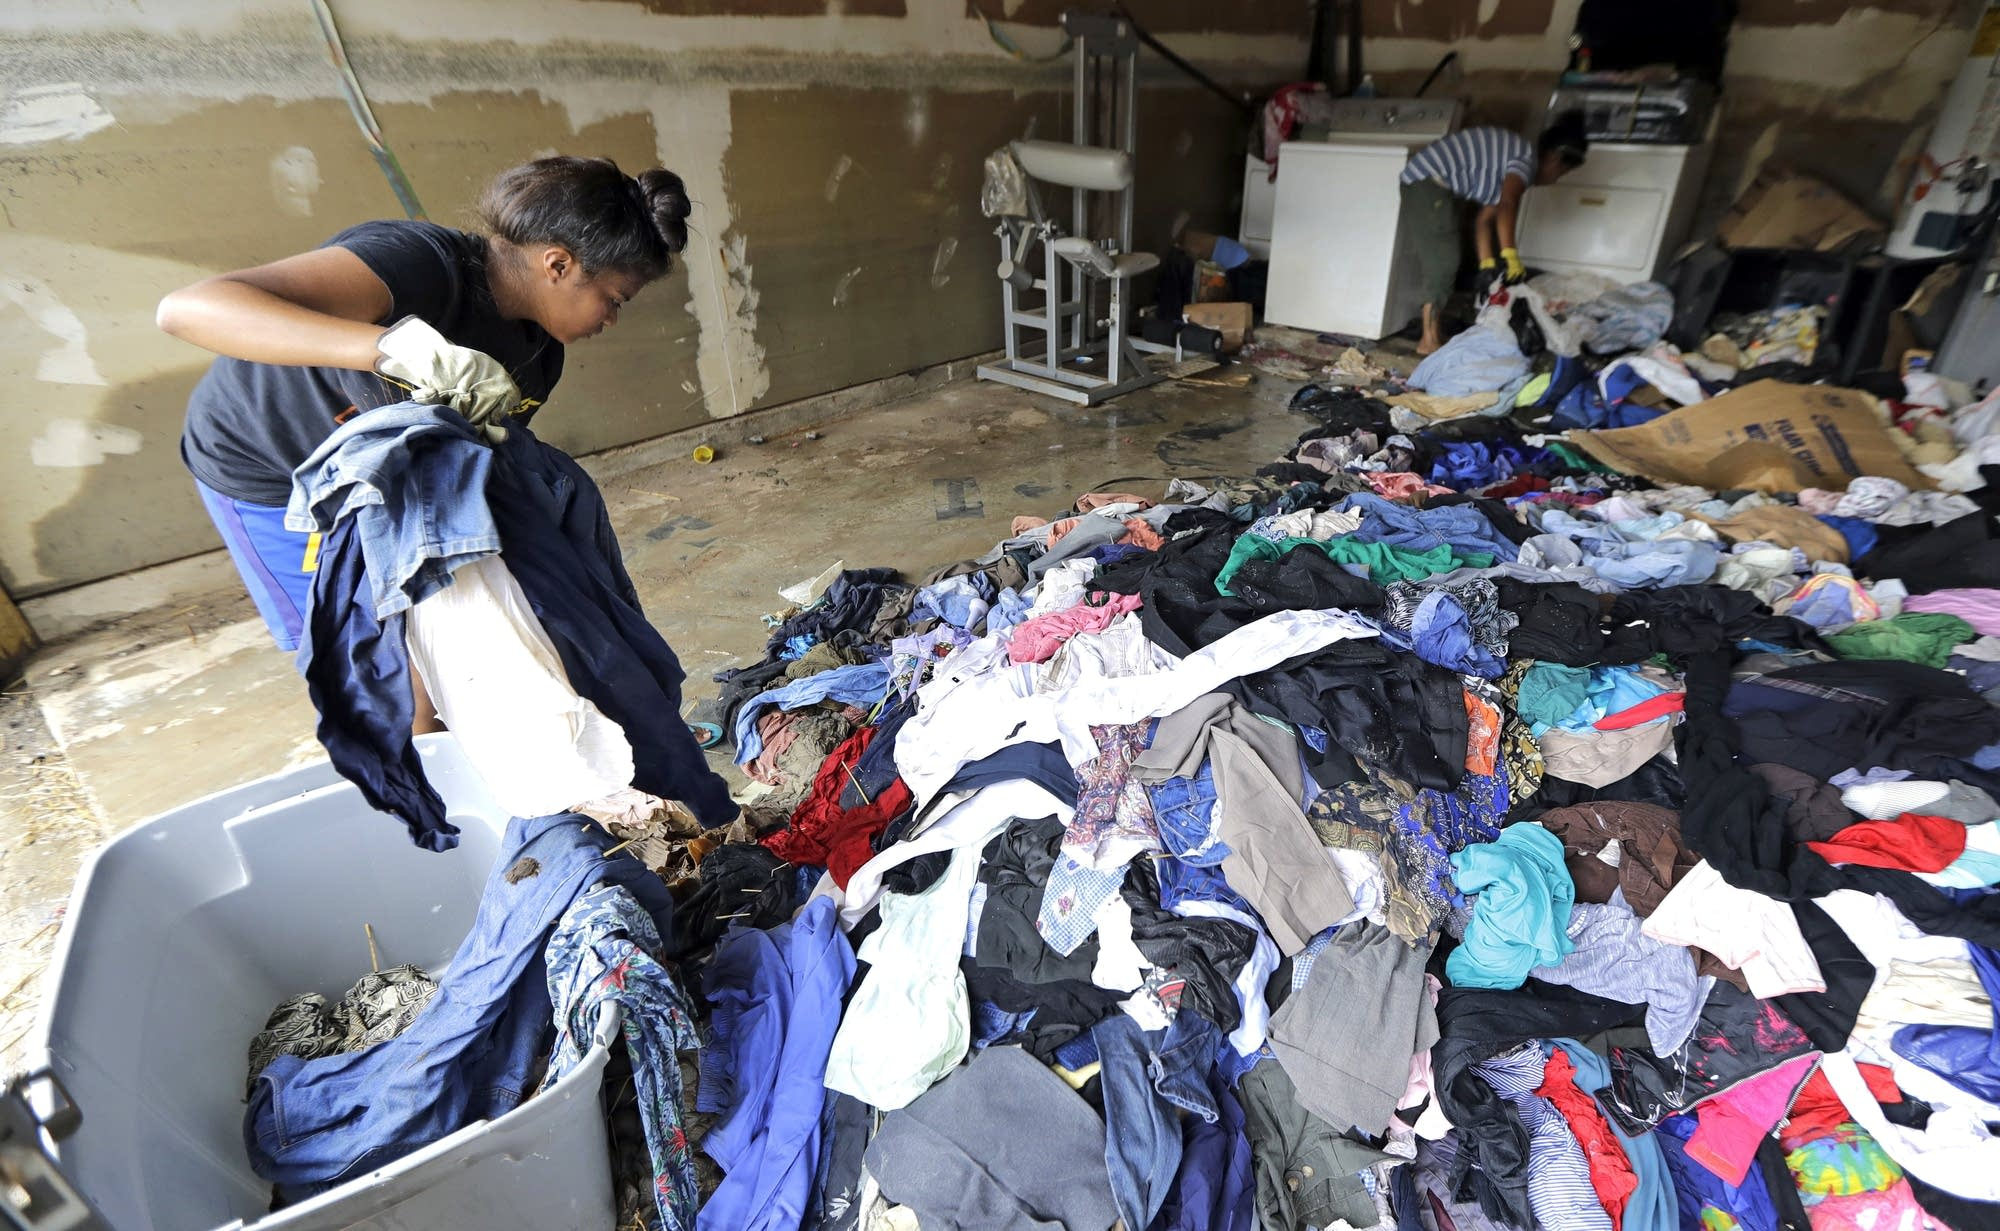 Women remove cloting from their Houston home, destroyed by floodwaters